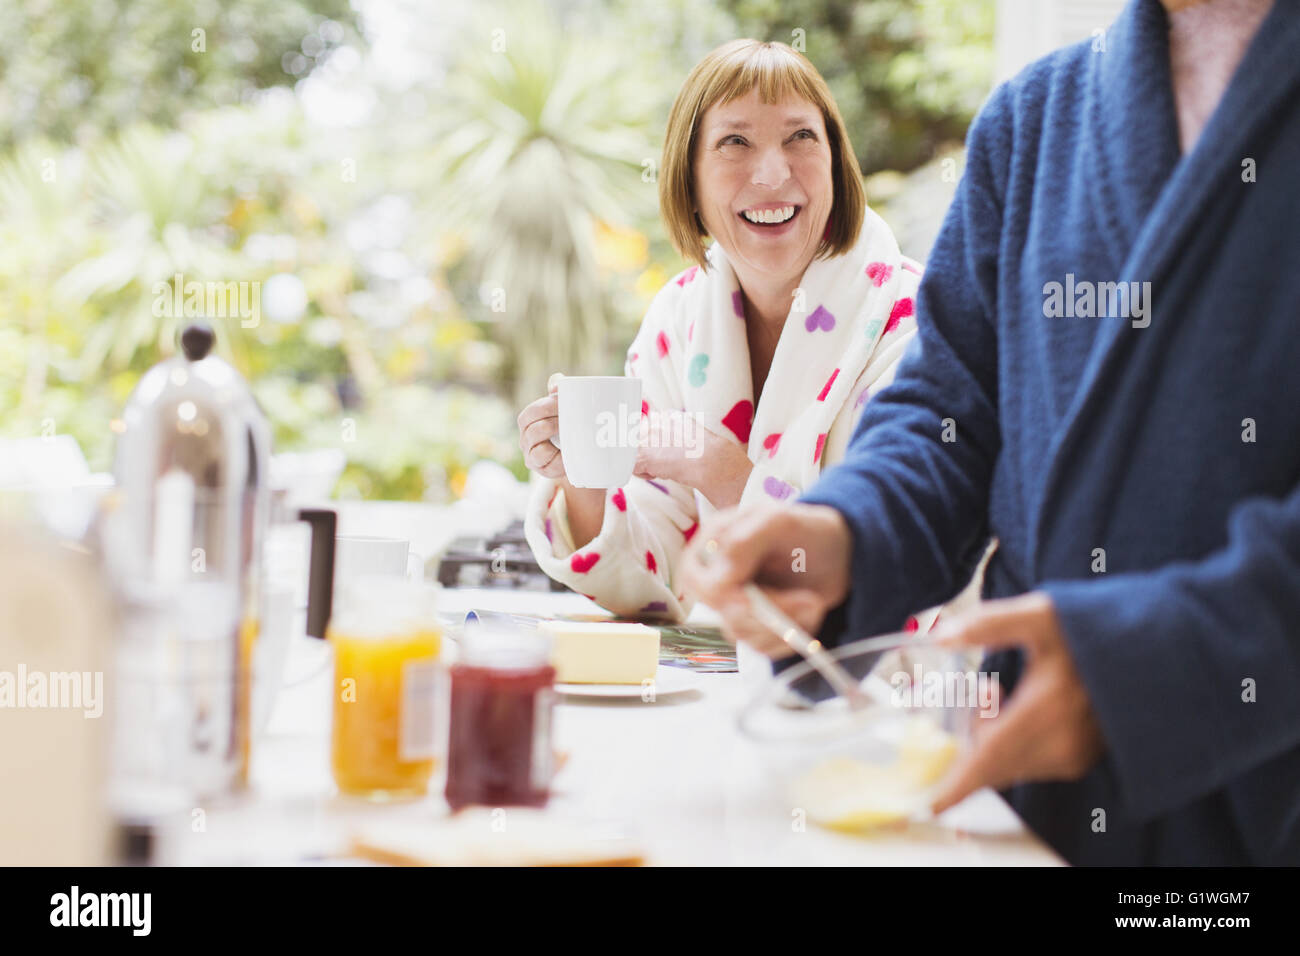 Smiling mature woman drinking coffee in bathrobe at breakfast - Stock Image